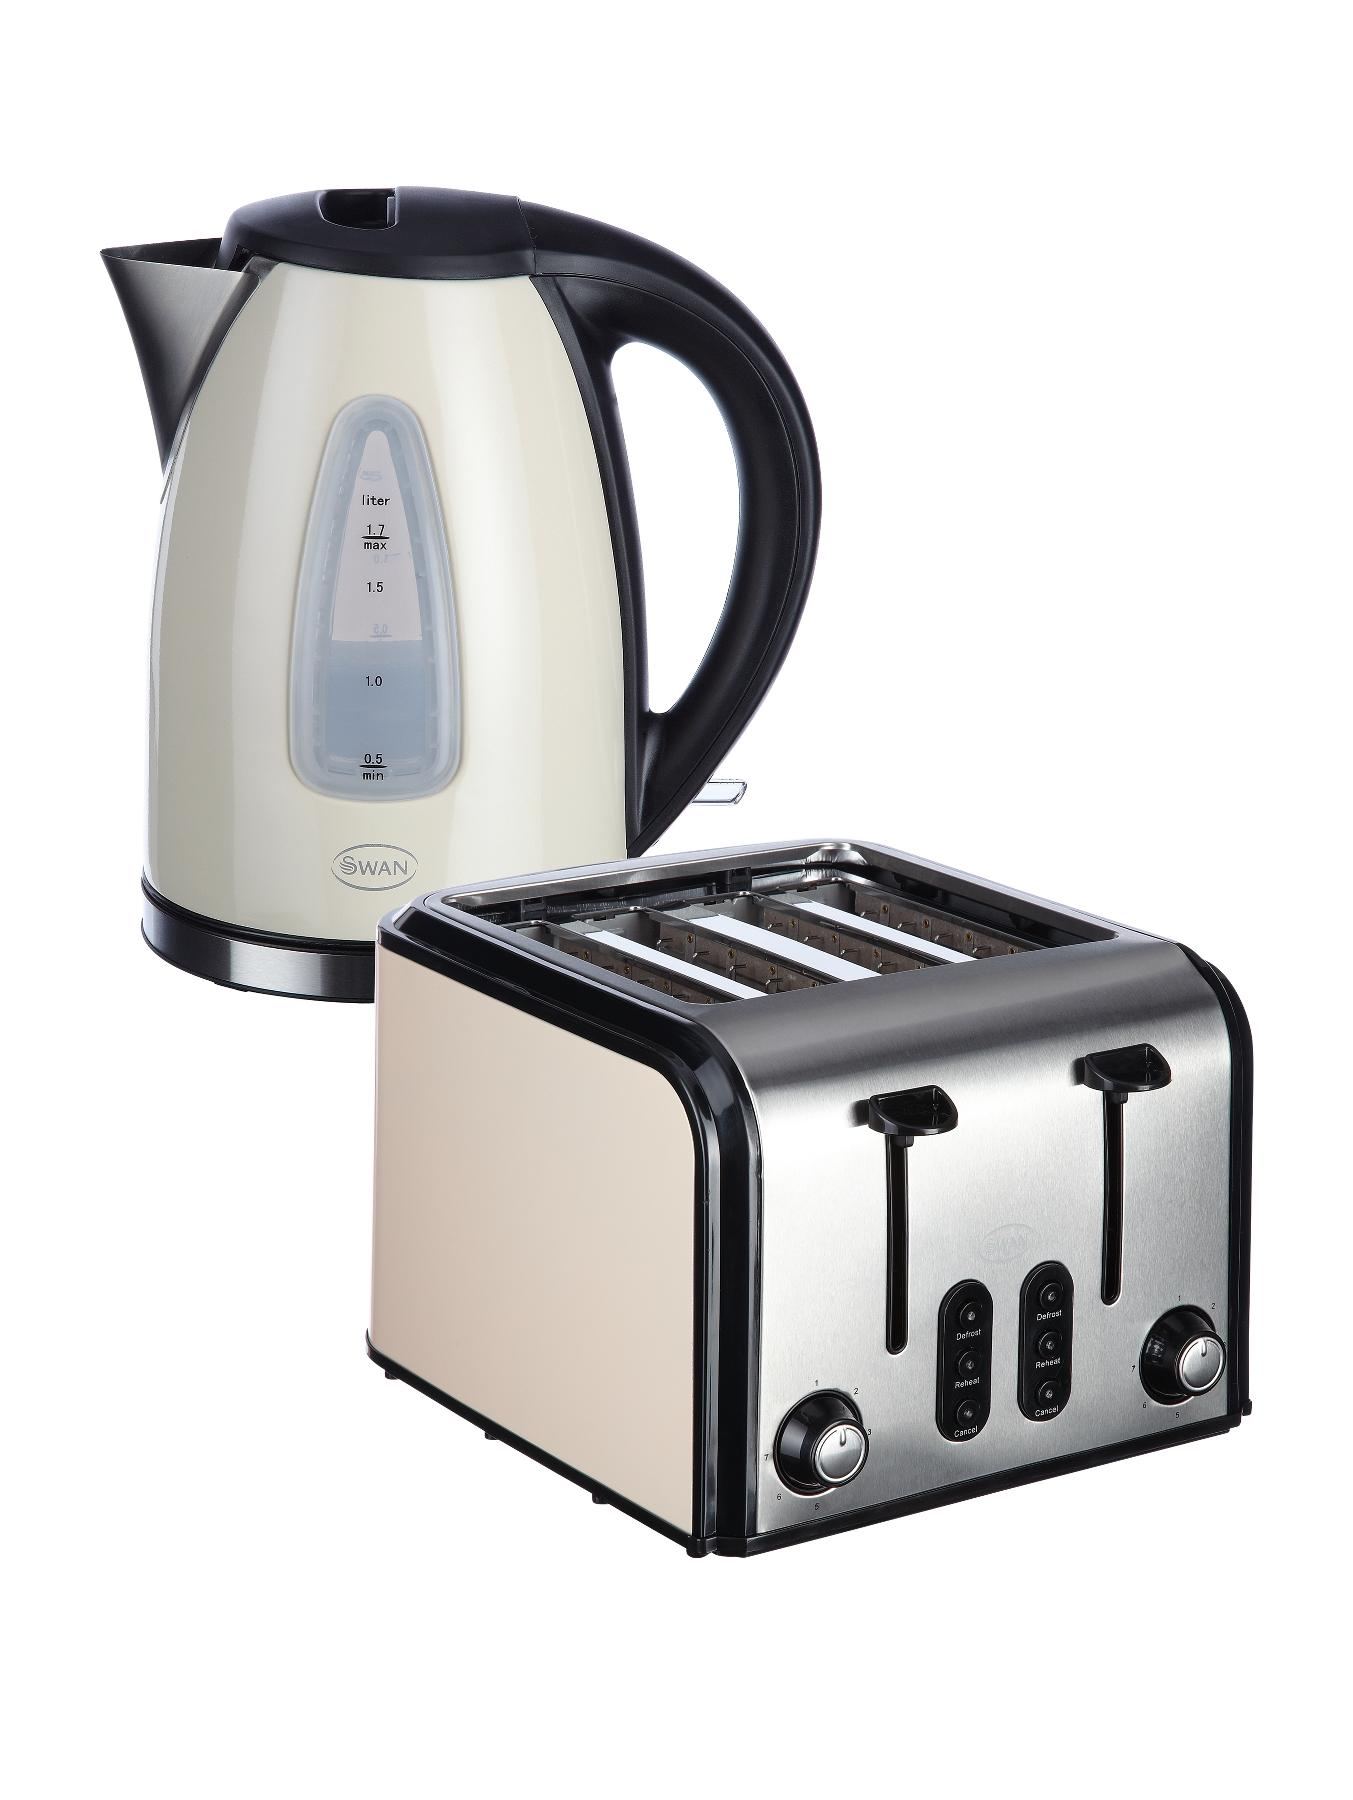 Toaster kettle set shop for cheap toasters and save online for Kitchen set kettle toaster